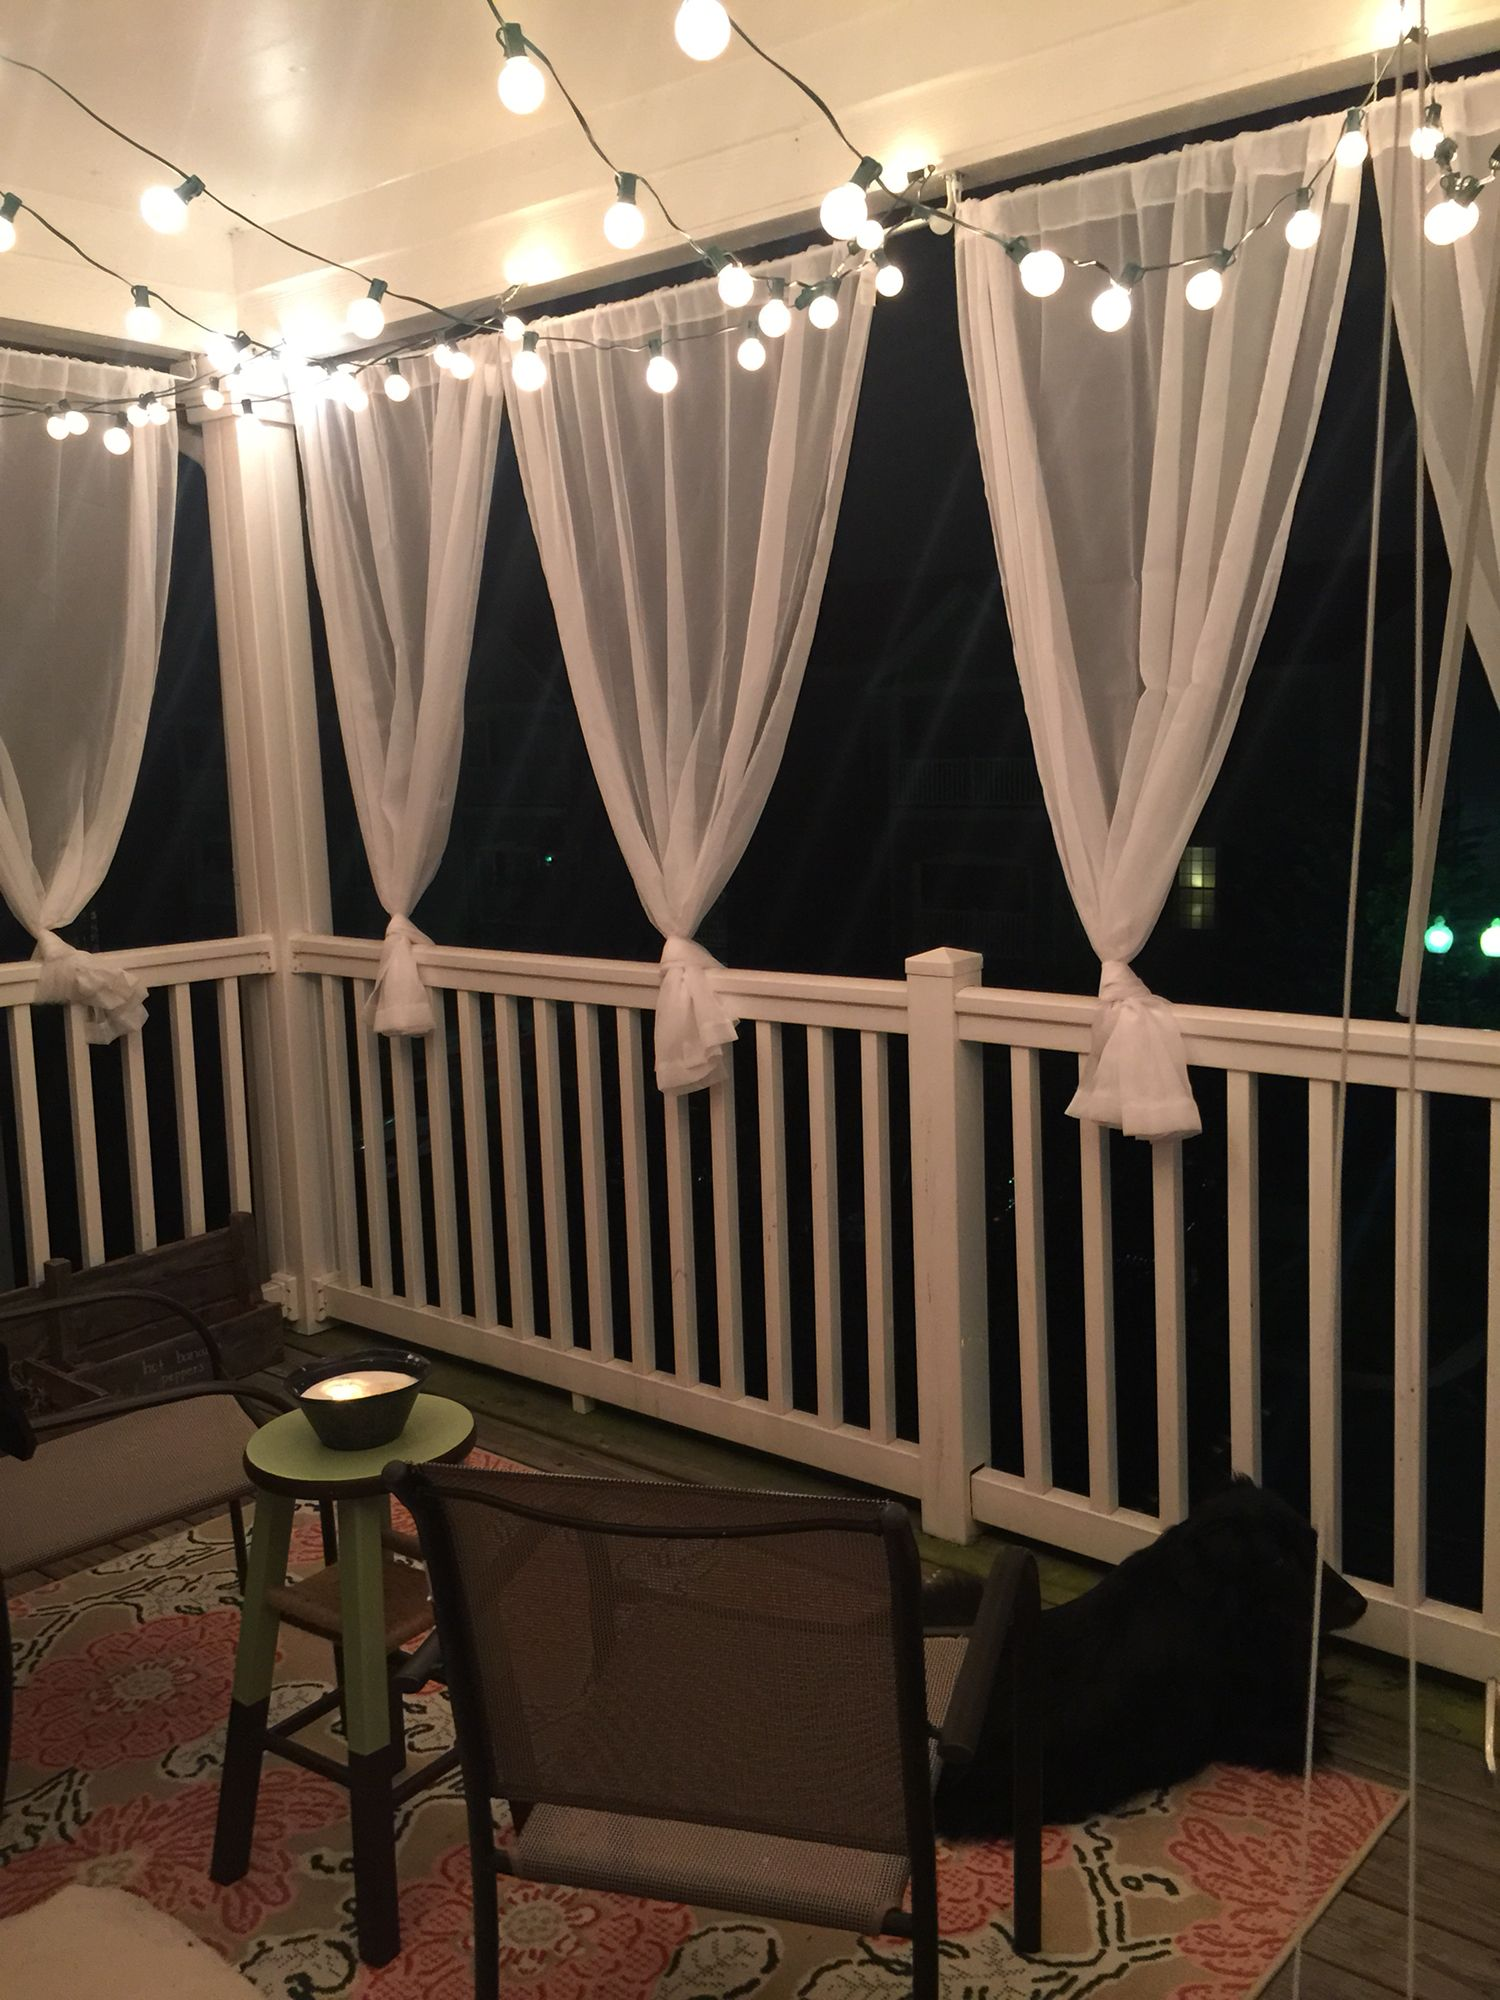 japanese garden ideas and tips apartment balcony decorating condo decorating apartment makeover on christmas balcony decorations apartment patio id=38078